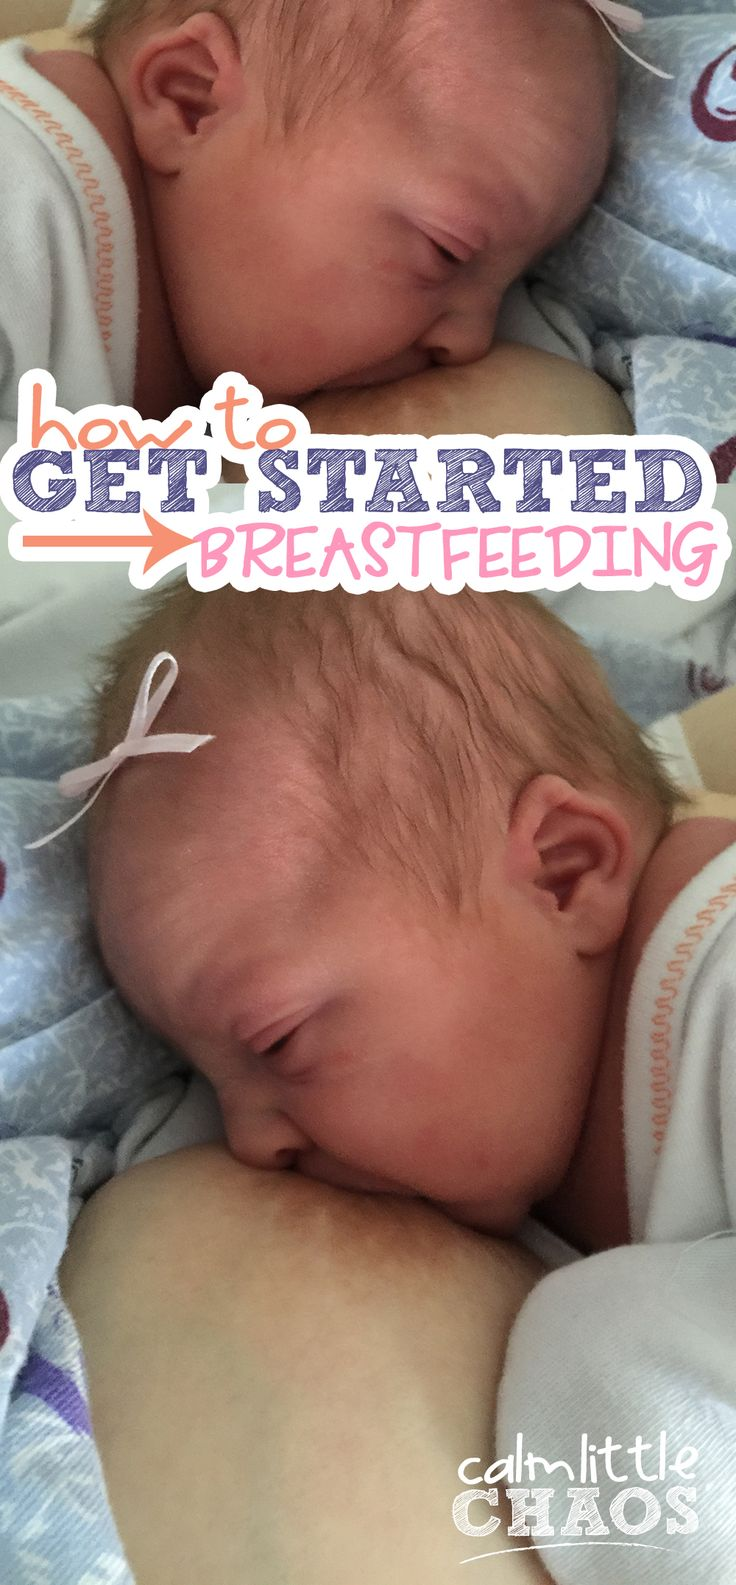 You've decided you want to breastfeed when babe gets here, but you're overwhelmed with getting off to the right foot. Let me help you with these tips for new moms to help you get started breastfeeding from a mom who's been there. Click through to learn more!